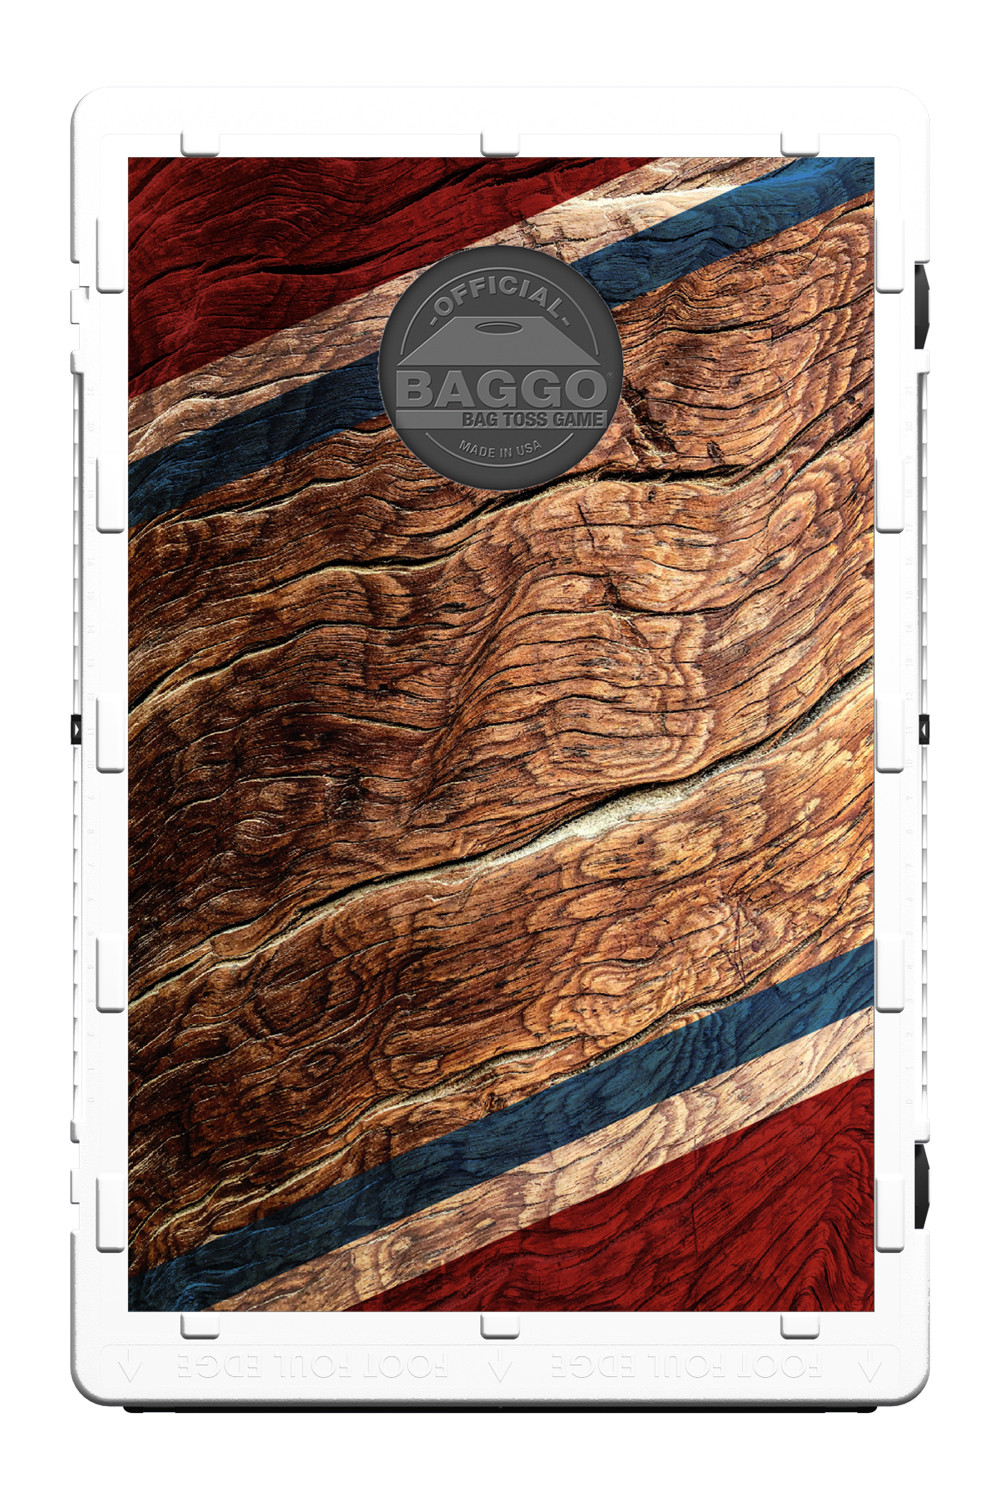 Marbled Red White and Blue Screens (only) by Baggo